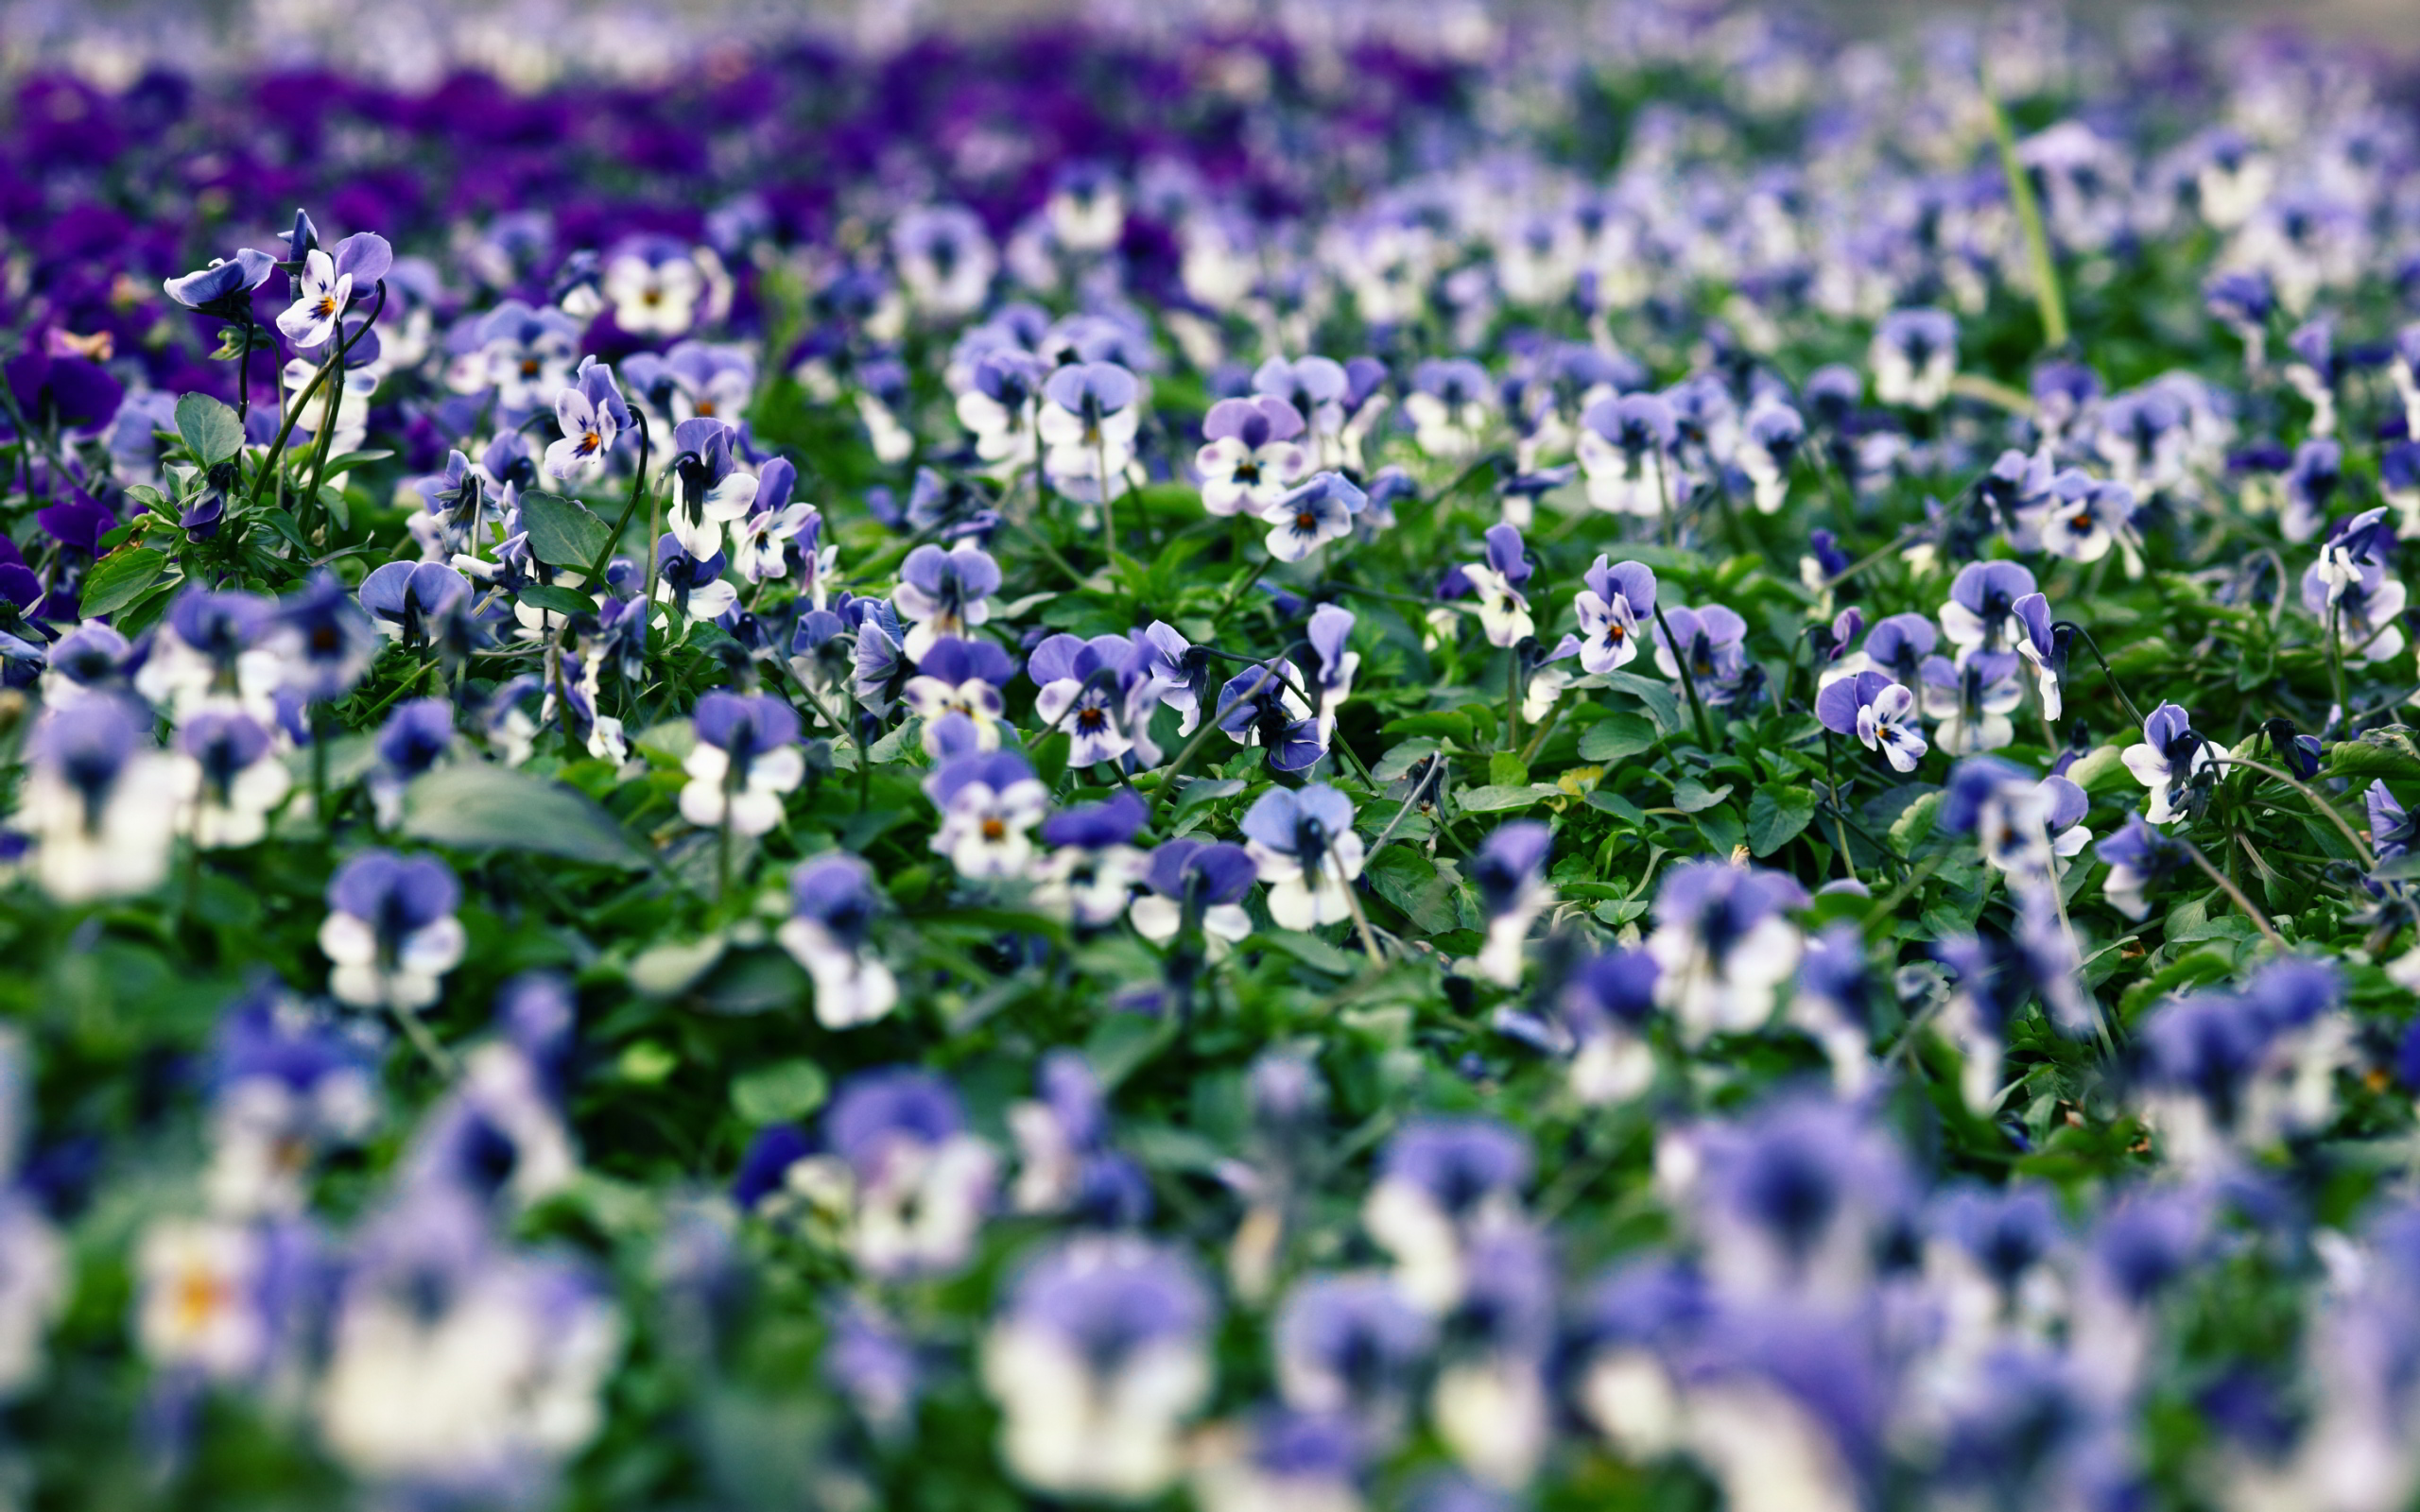 pansies field images hd